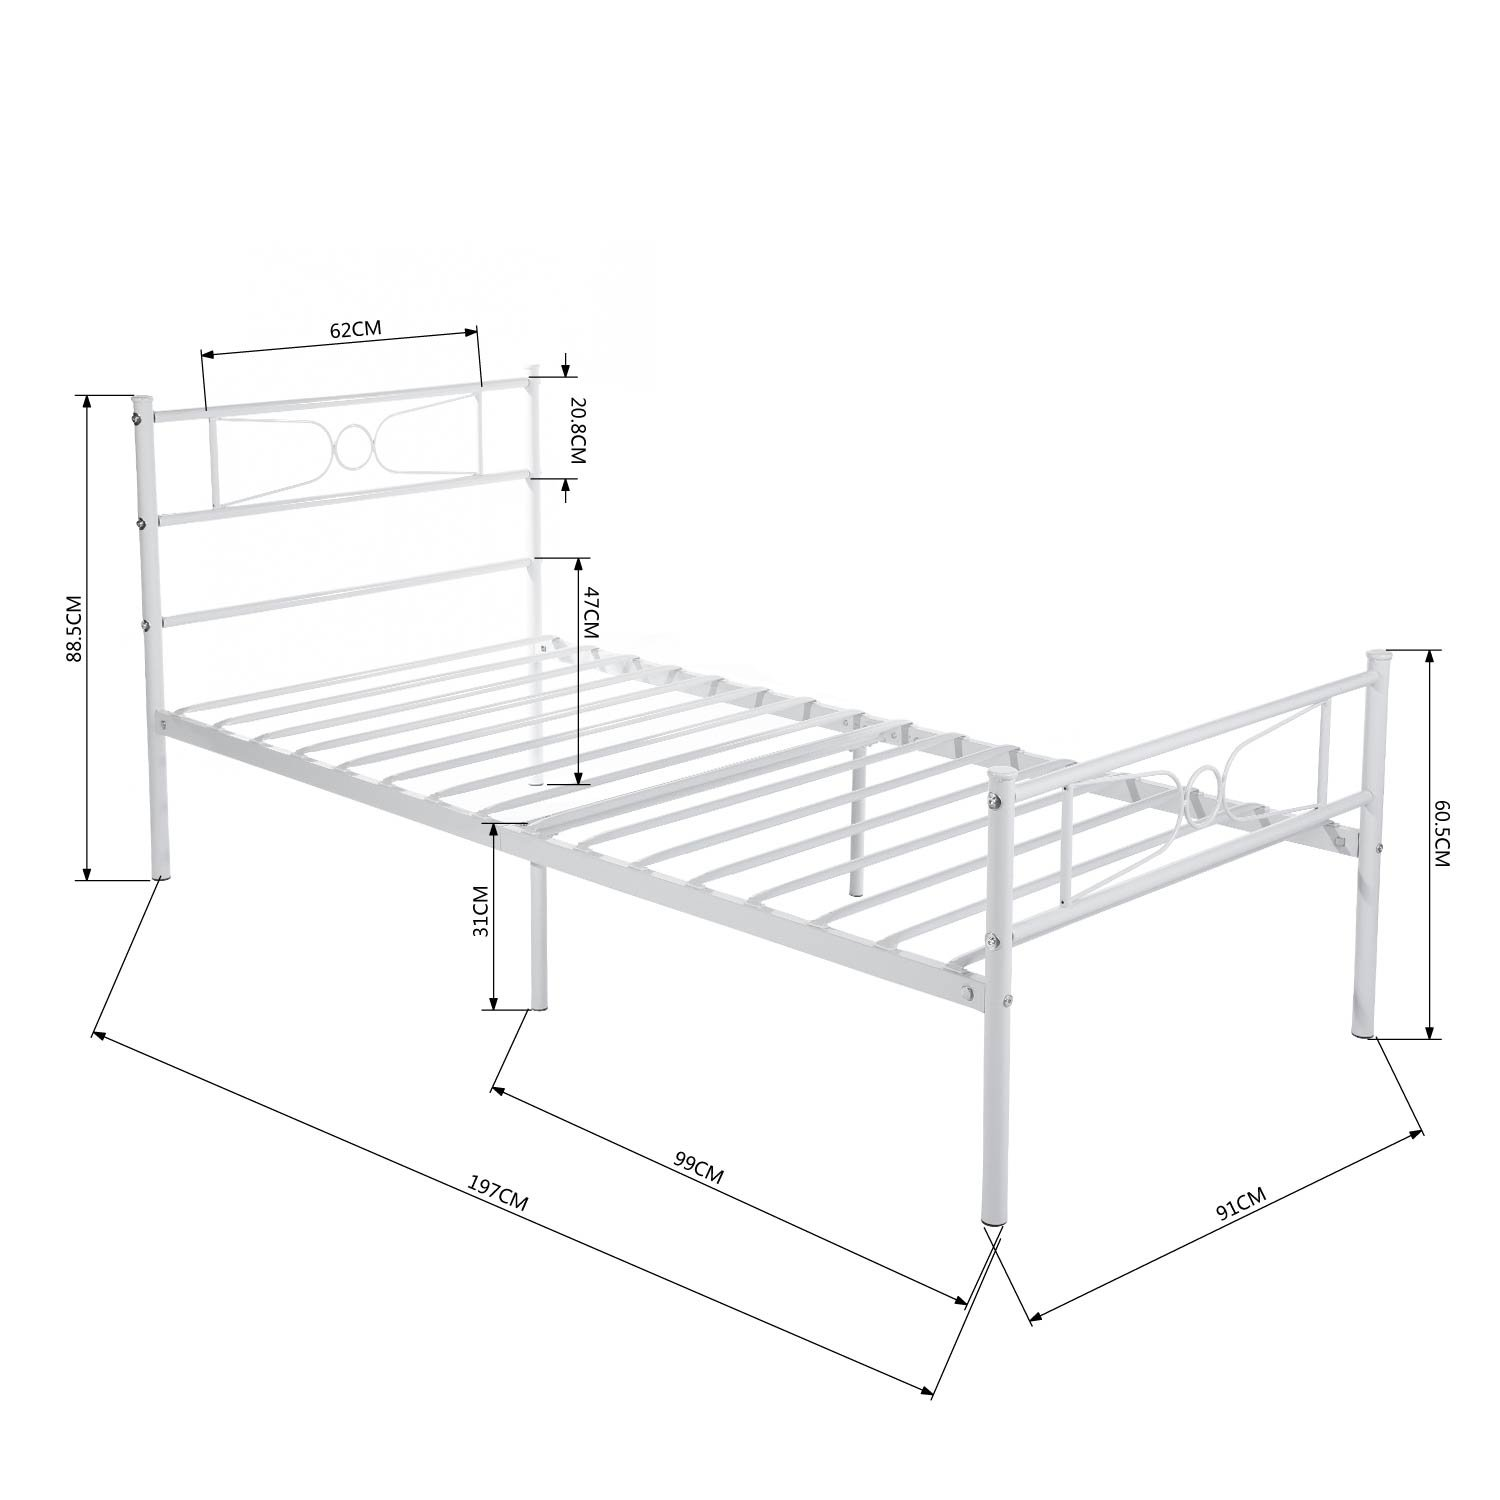 white GIME Twin Bed Frame Yanni LESILE Easy Set-up Premium Metal Platform Mattress Foundation//Box Spring Replacement with Headboard and Footboard Under-bed Storage Enhanced Sturdy Slats